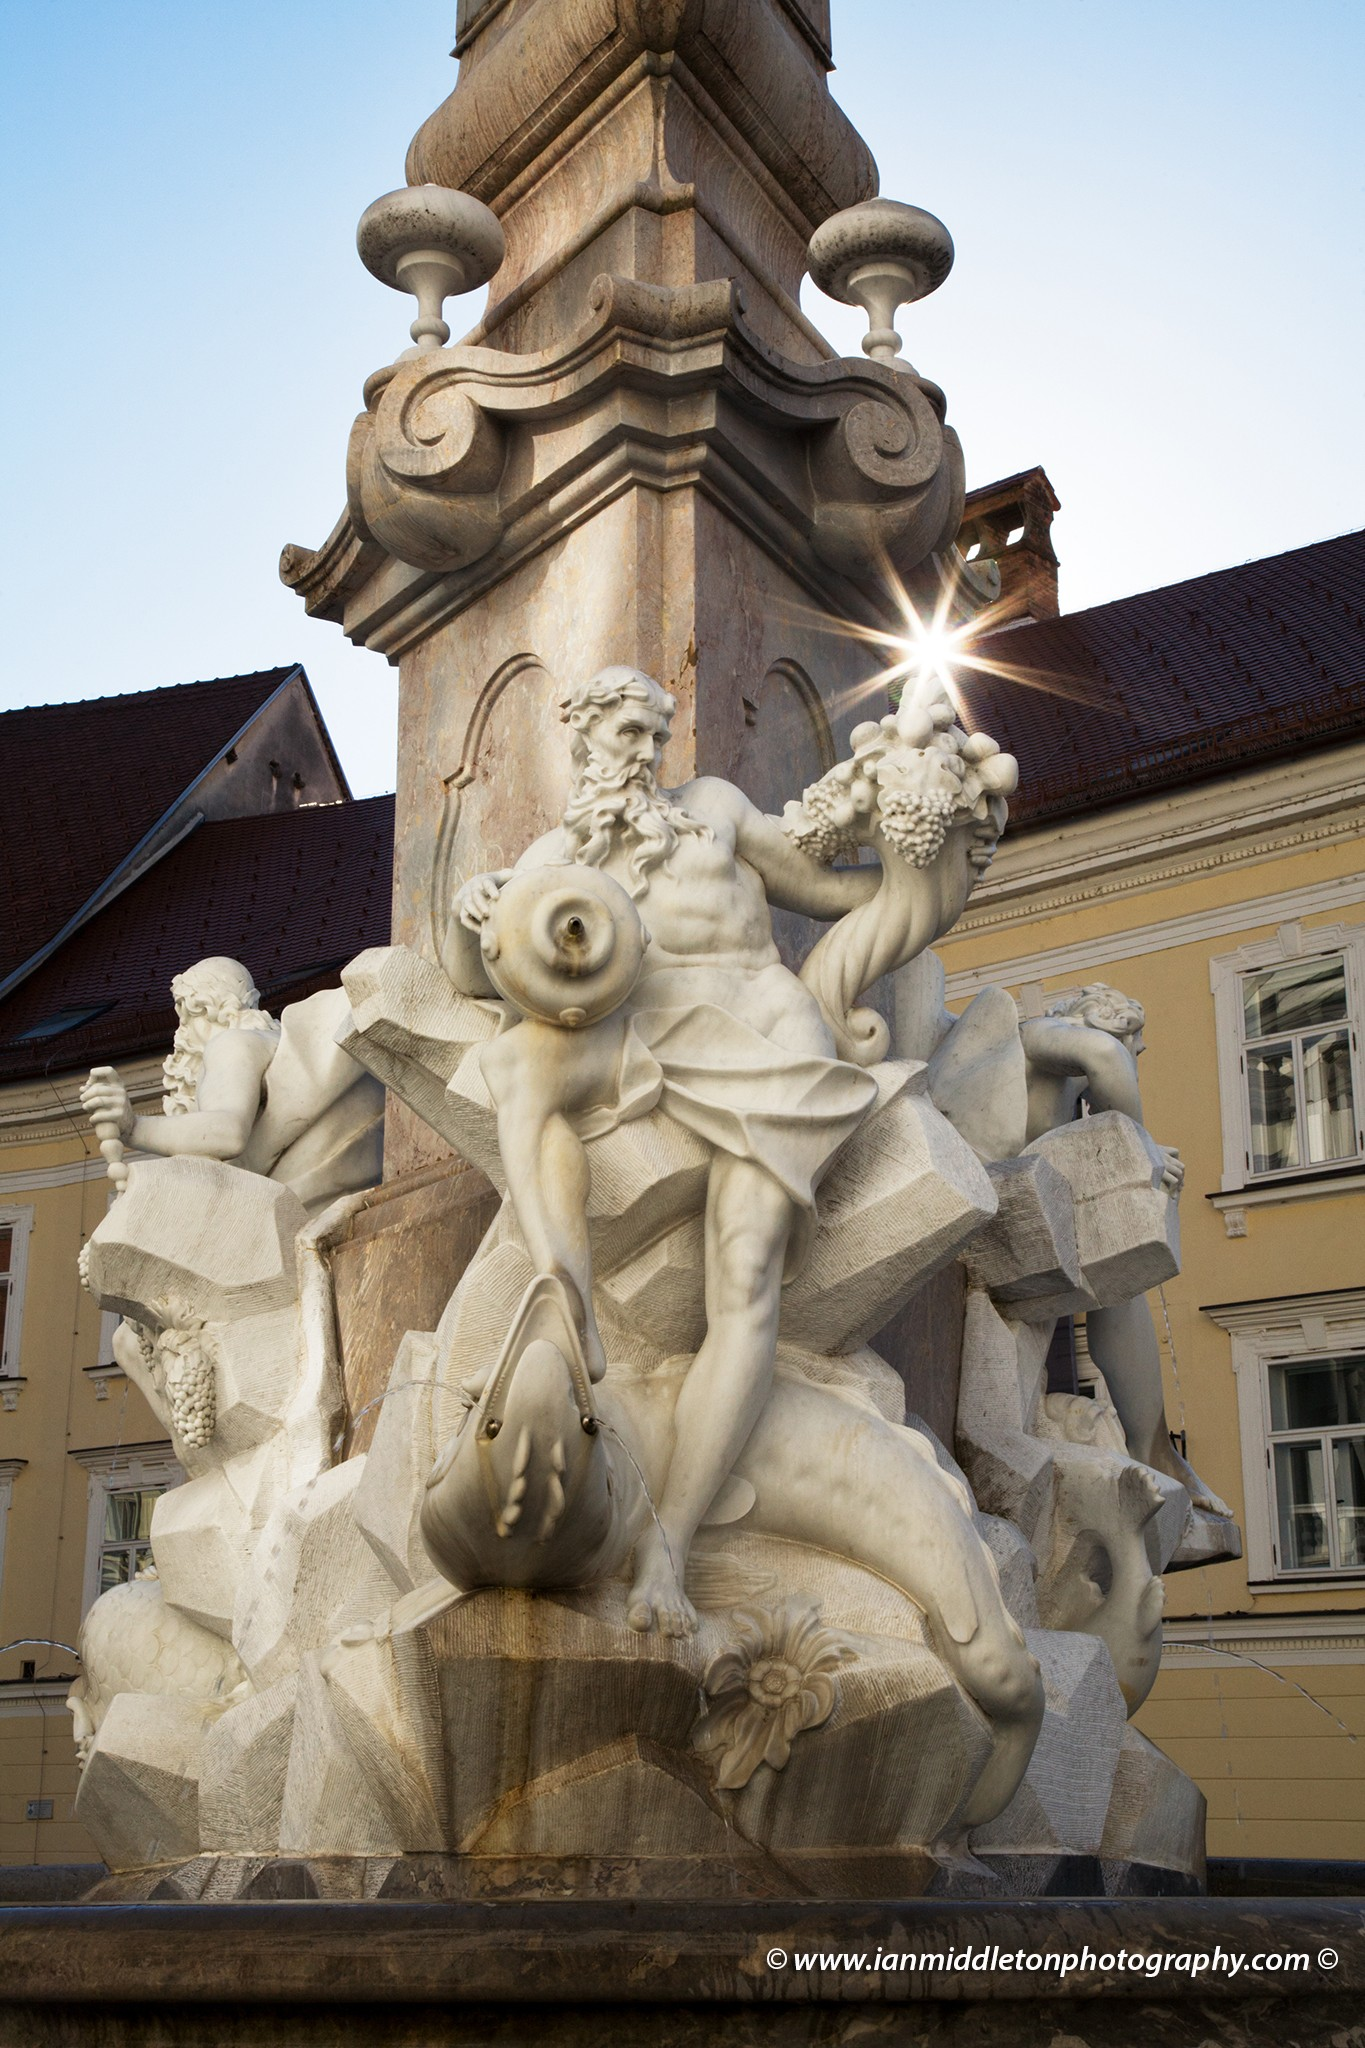 Backlit view of Robba Fountain, also known as the Fountain of Three Carniolan Rivers, with the sunburst from behind the tower. It sits in the old town square (Mestni Trg) in front of the town hall. Built in 1751, this famous fountain is named after its creator, the Italian Baroque sculptor Francesco Robba (1698-1757). The pool is in the shape of a three leaf clover and from it rises a three sided obilisk. The fountain is adorned with the statues of the three river Gods: Krka, Ljubljanica and Sava, also the names of three of Slovenia's main rivers. The original has been removed and placed in a museum for protection, due to its fragile nature, and has been replaced with a replica.